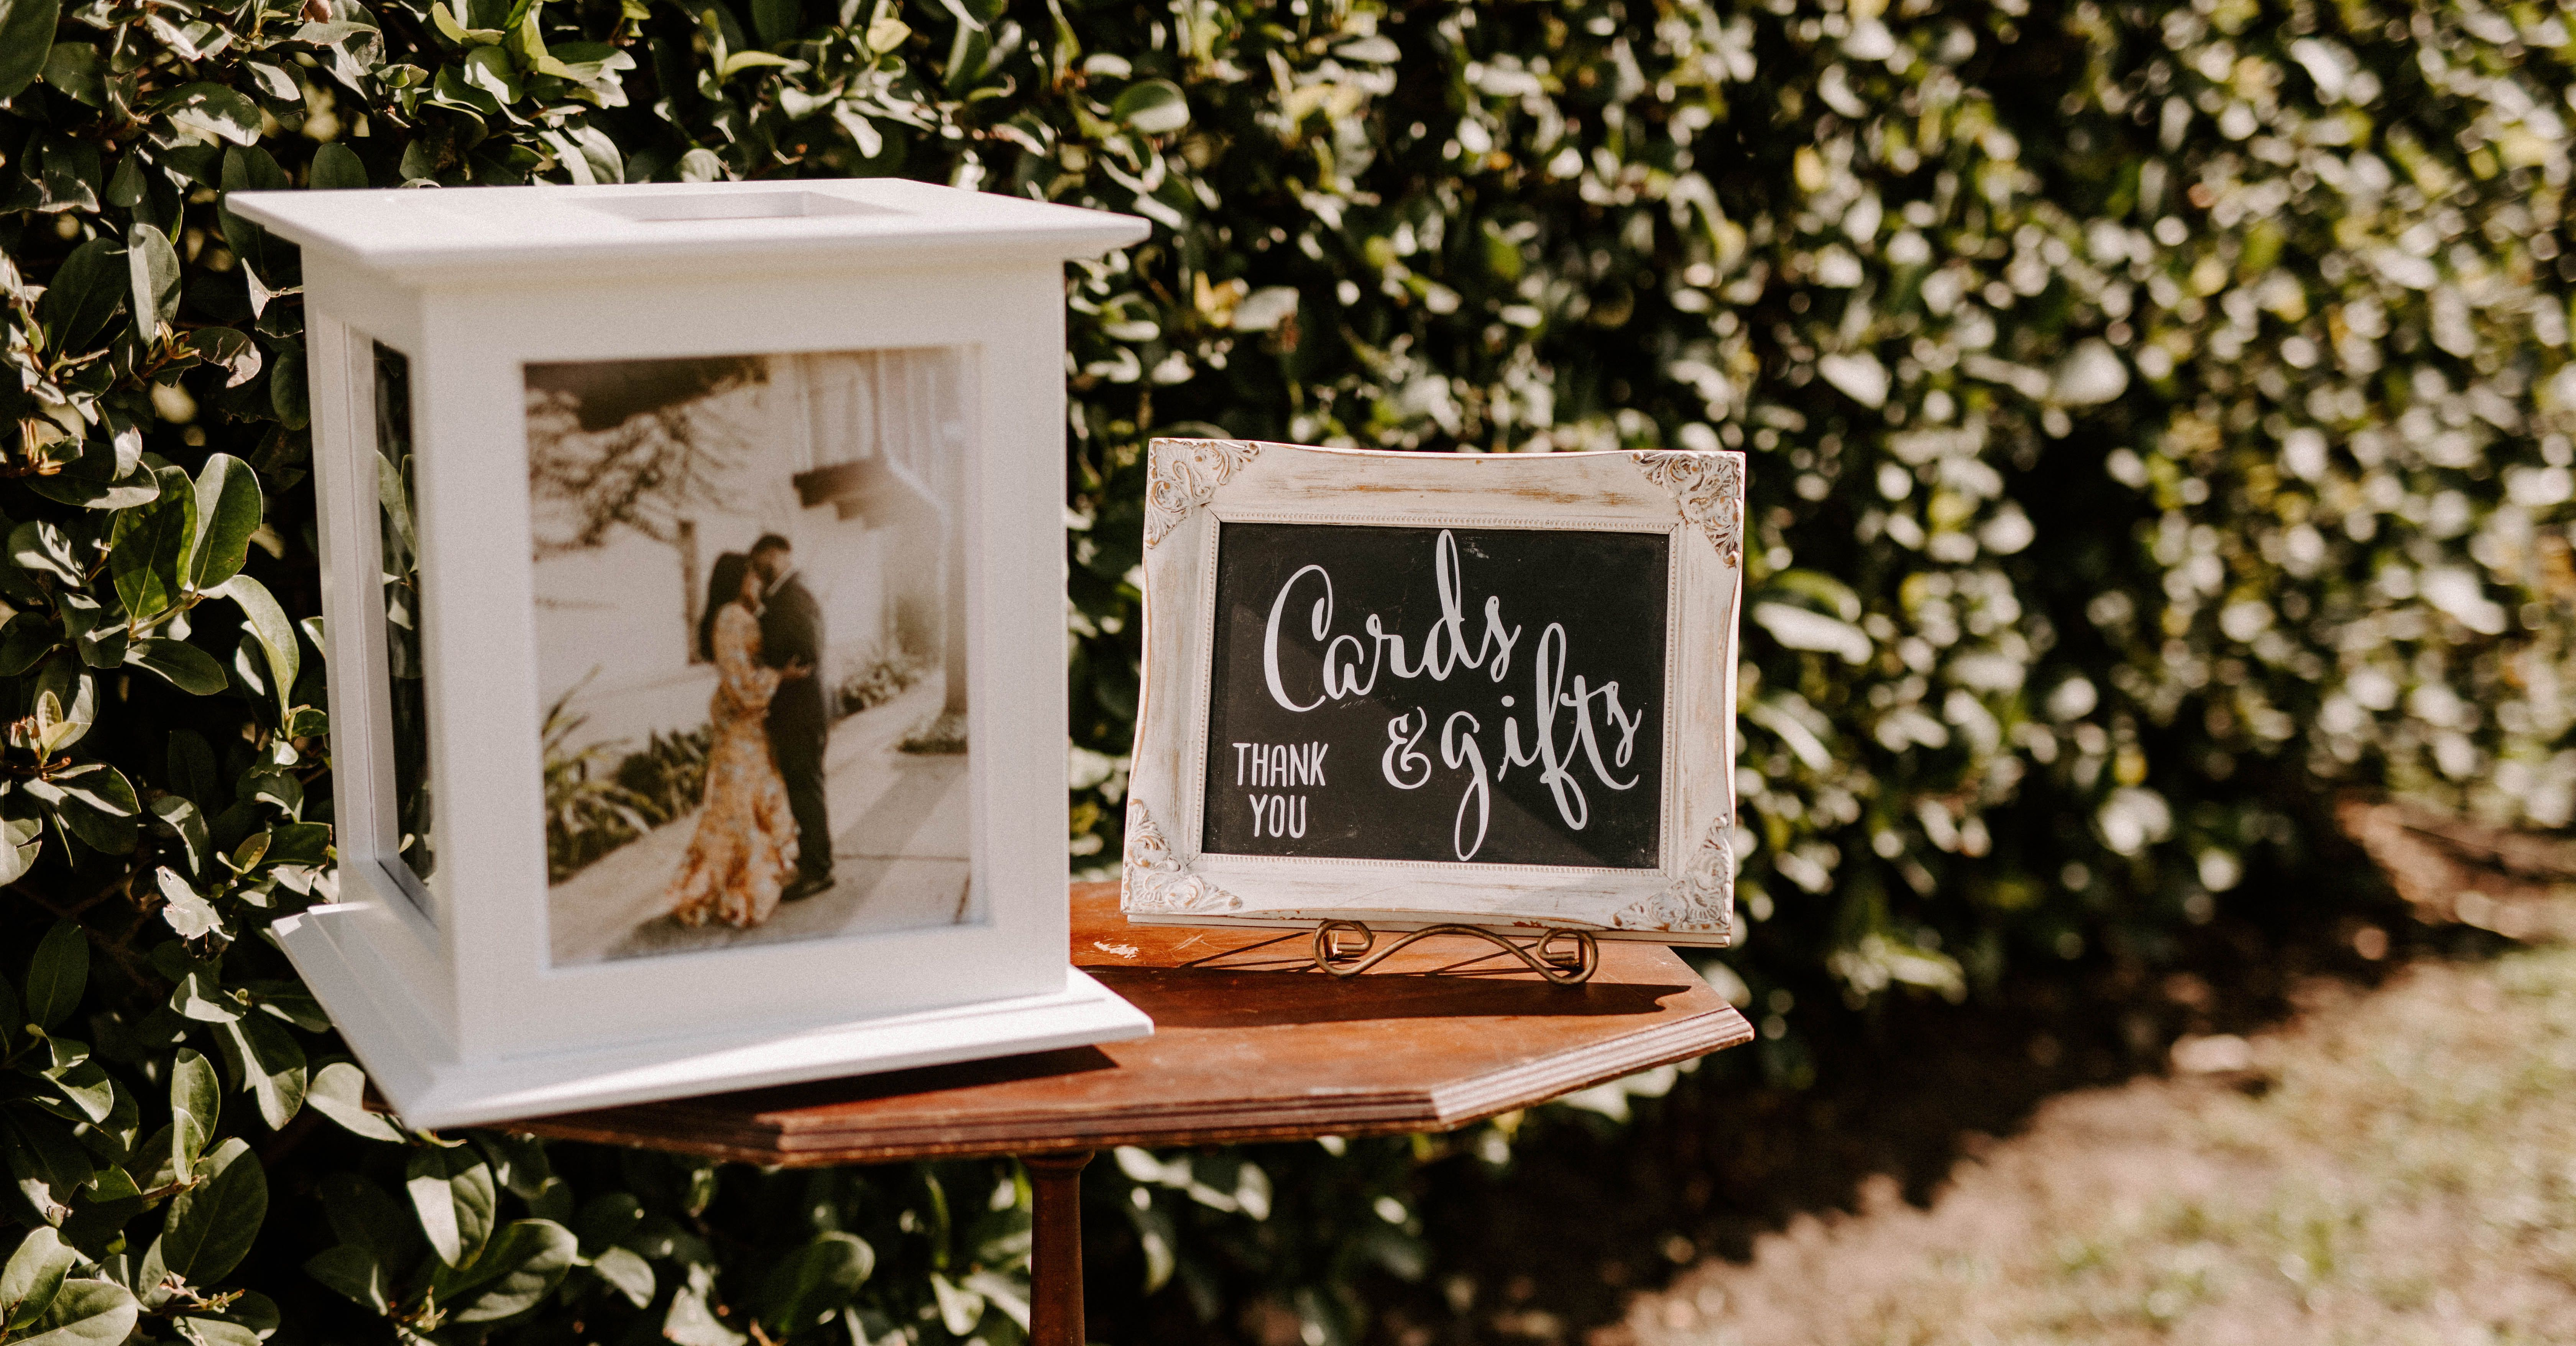 18 Ideas for Your Wedding Gift Table